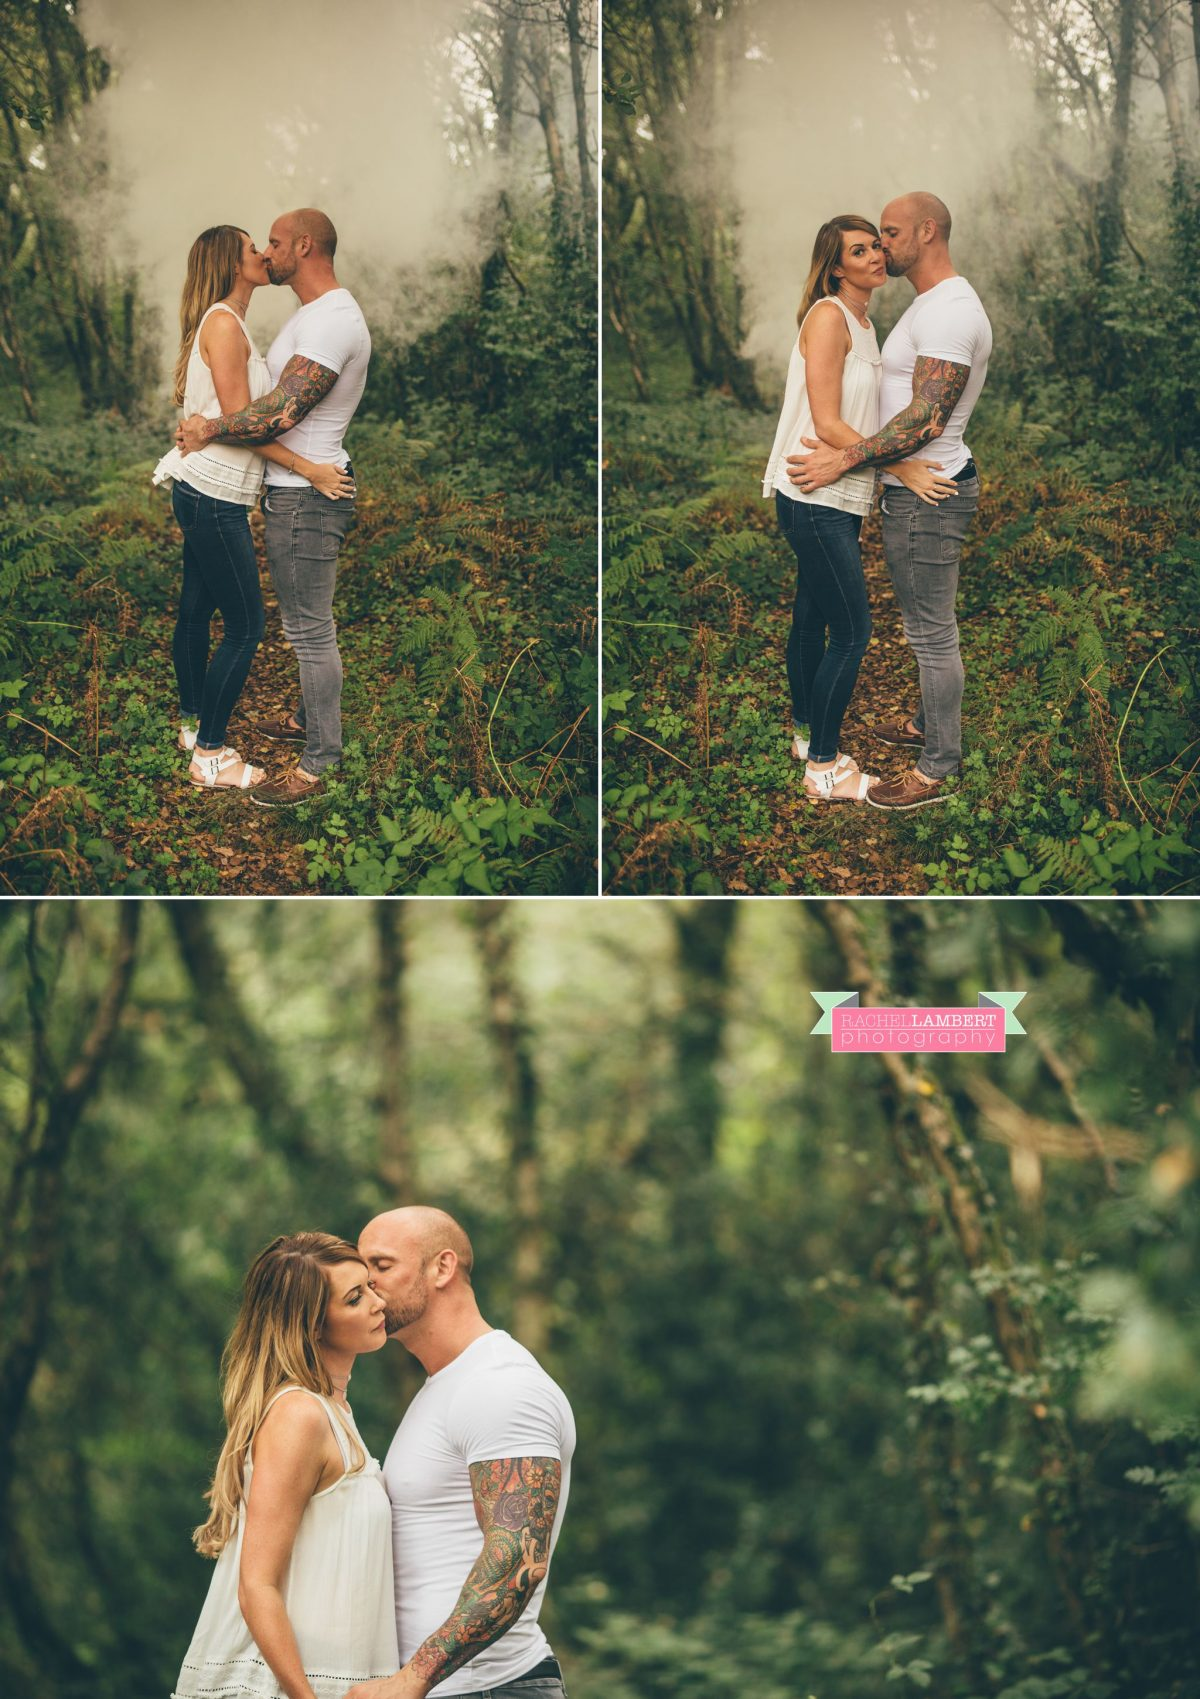 welsh_wedding_photographer_rachel_lambert_photography_cardiff_engagement_shoot_rhiannon_gavin_ 3